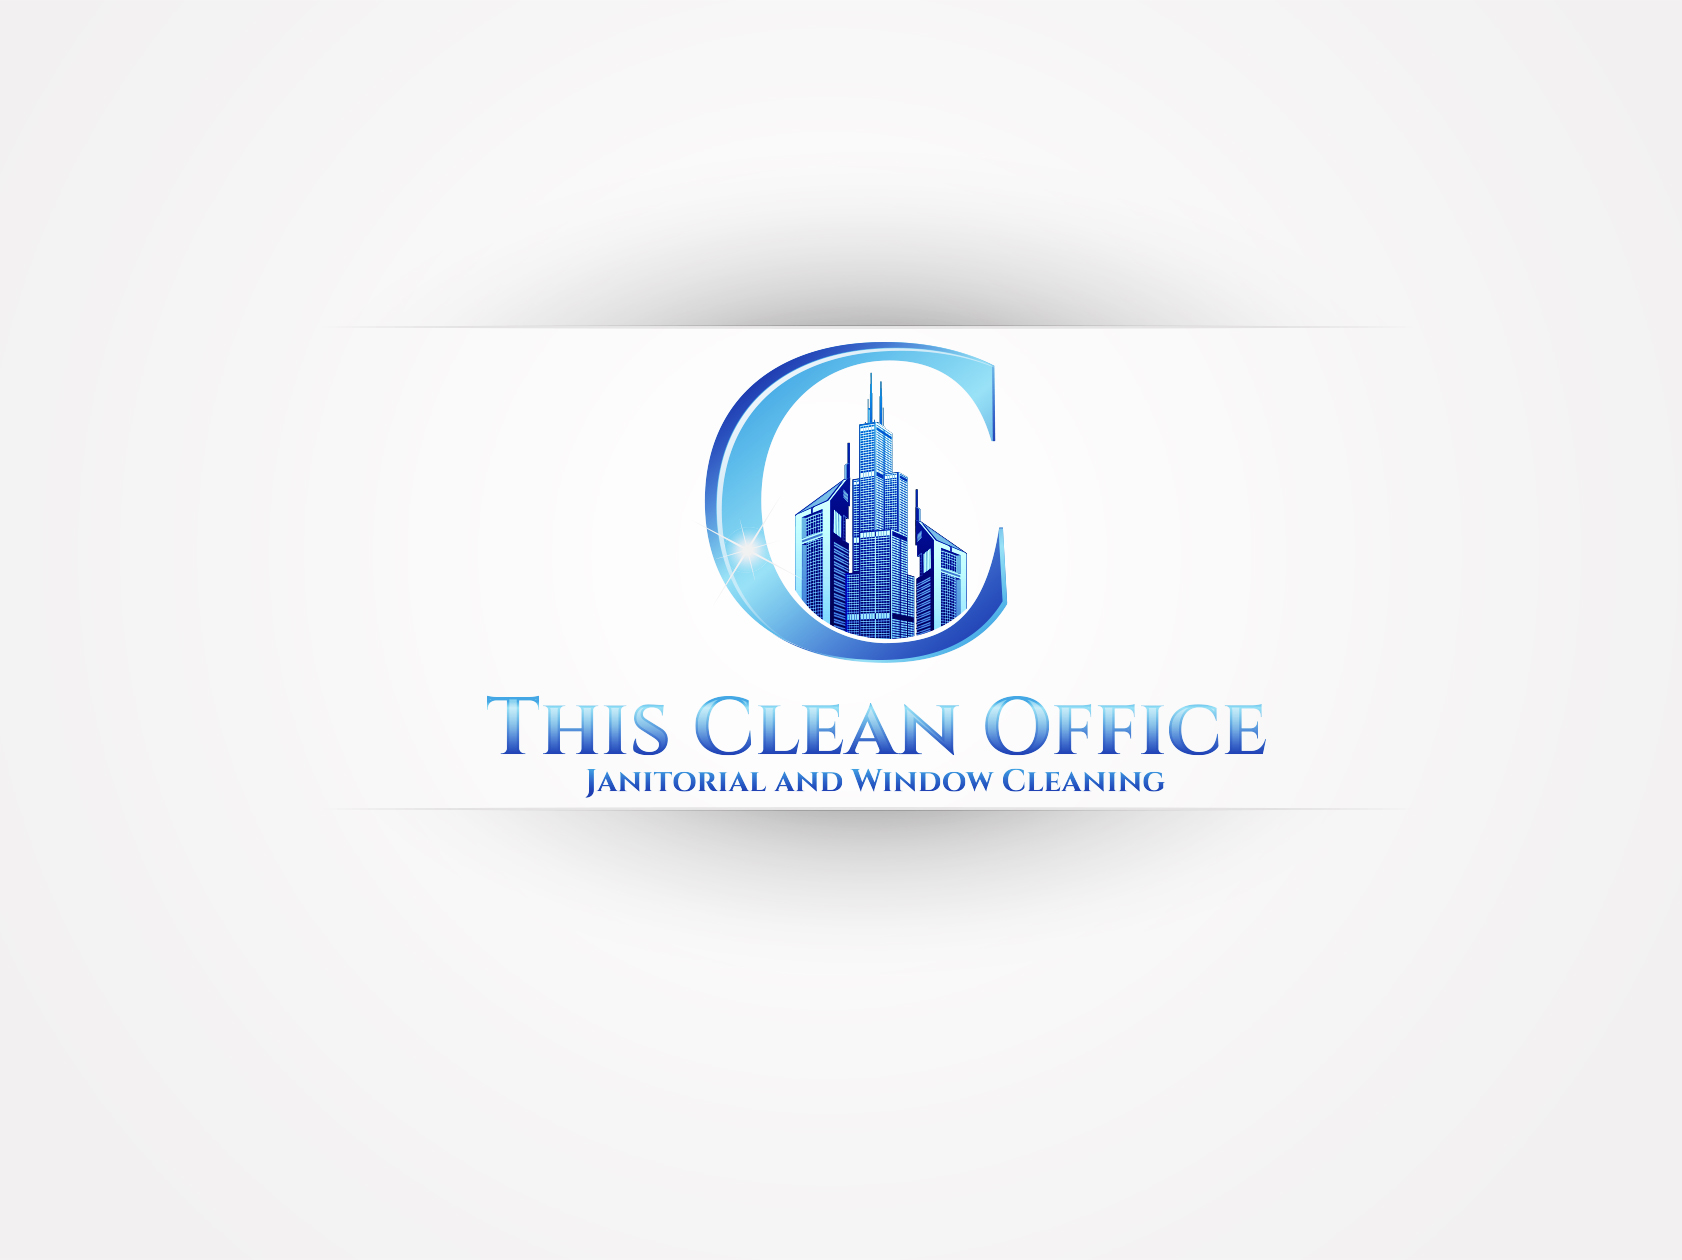 Logo Design by OmegaDesigns - Entry No. 62 in the Logo Design Contest Professional and Unforgettable Logo Design for This Clean Office.